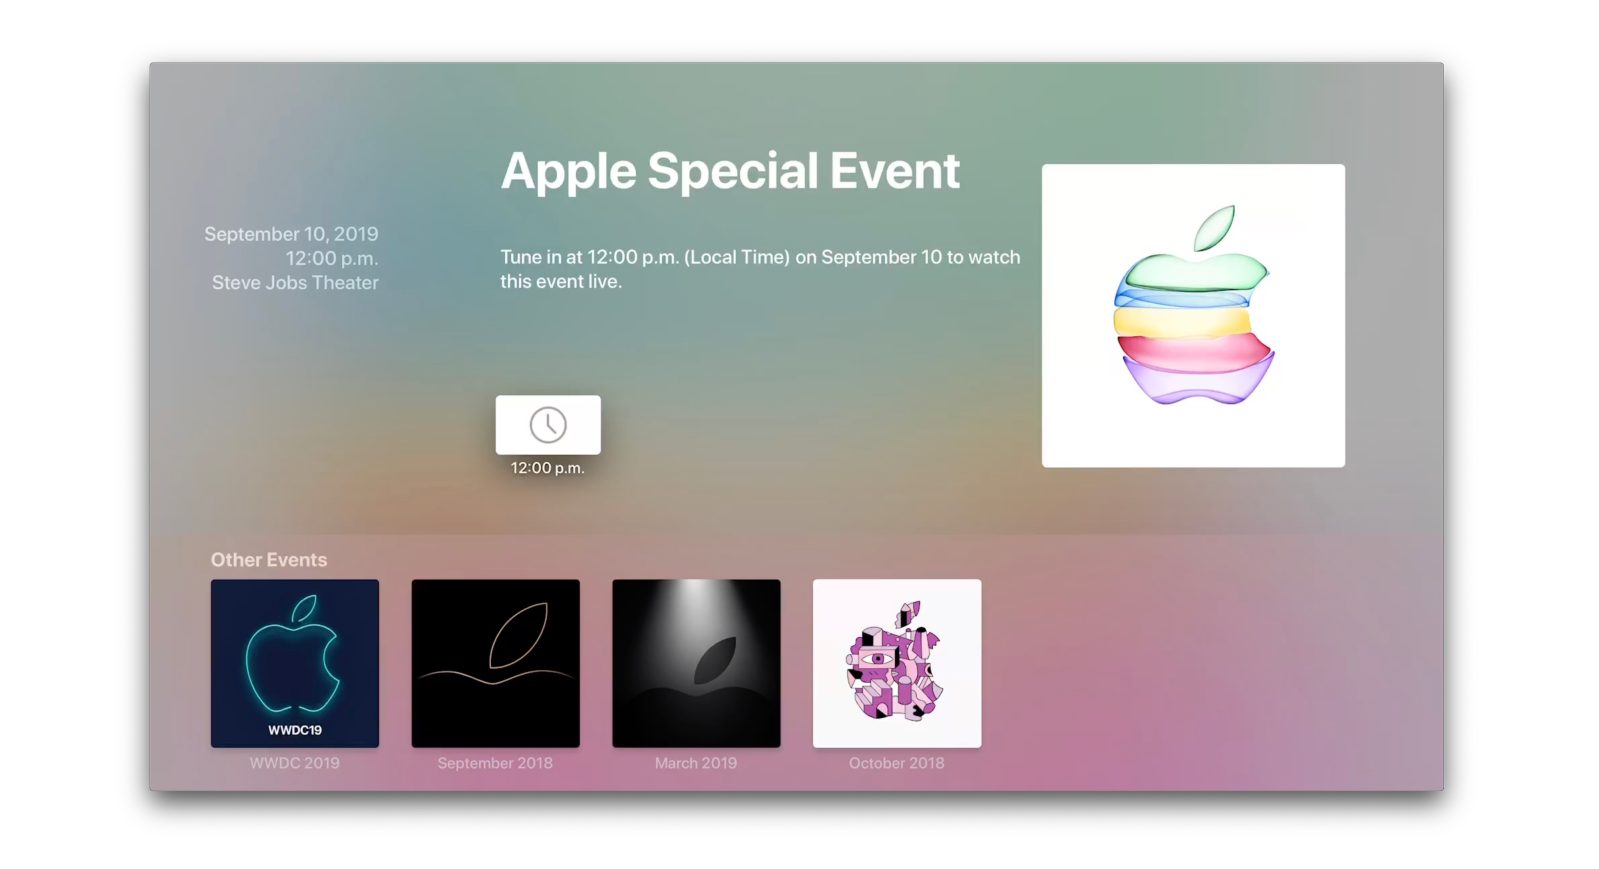 Apple Events app for tvOS updated ahead of iPhone 11 unveil stream